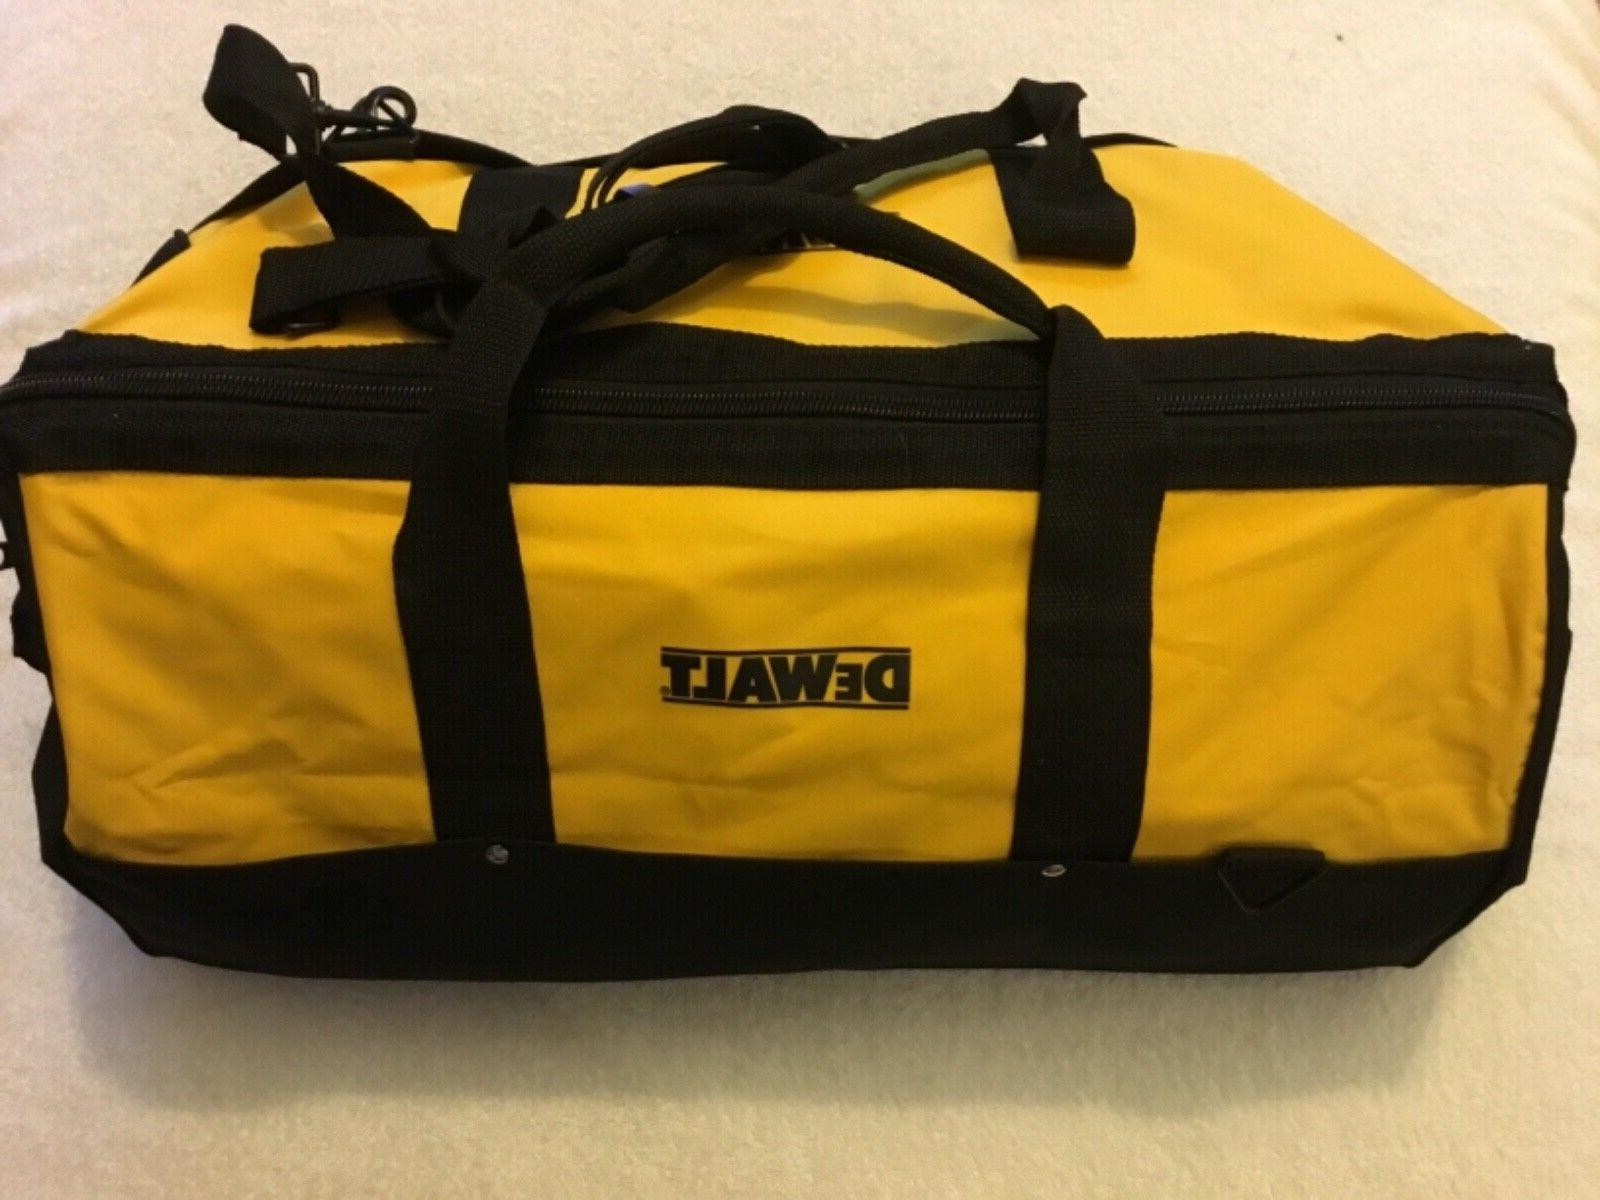 New Bag Heavy Duty Nylon Shoulder & 10